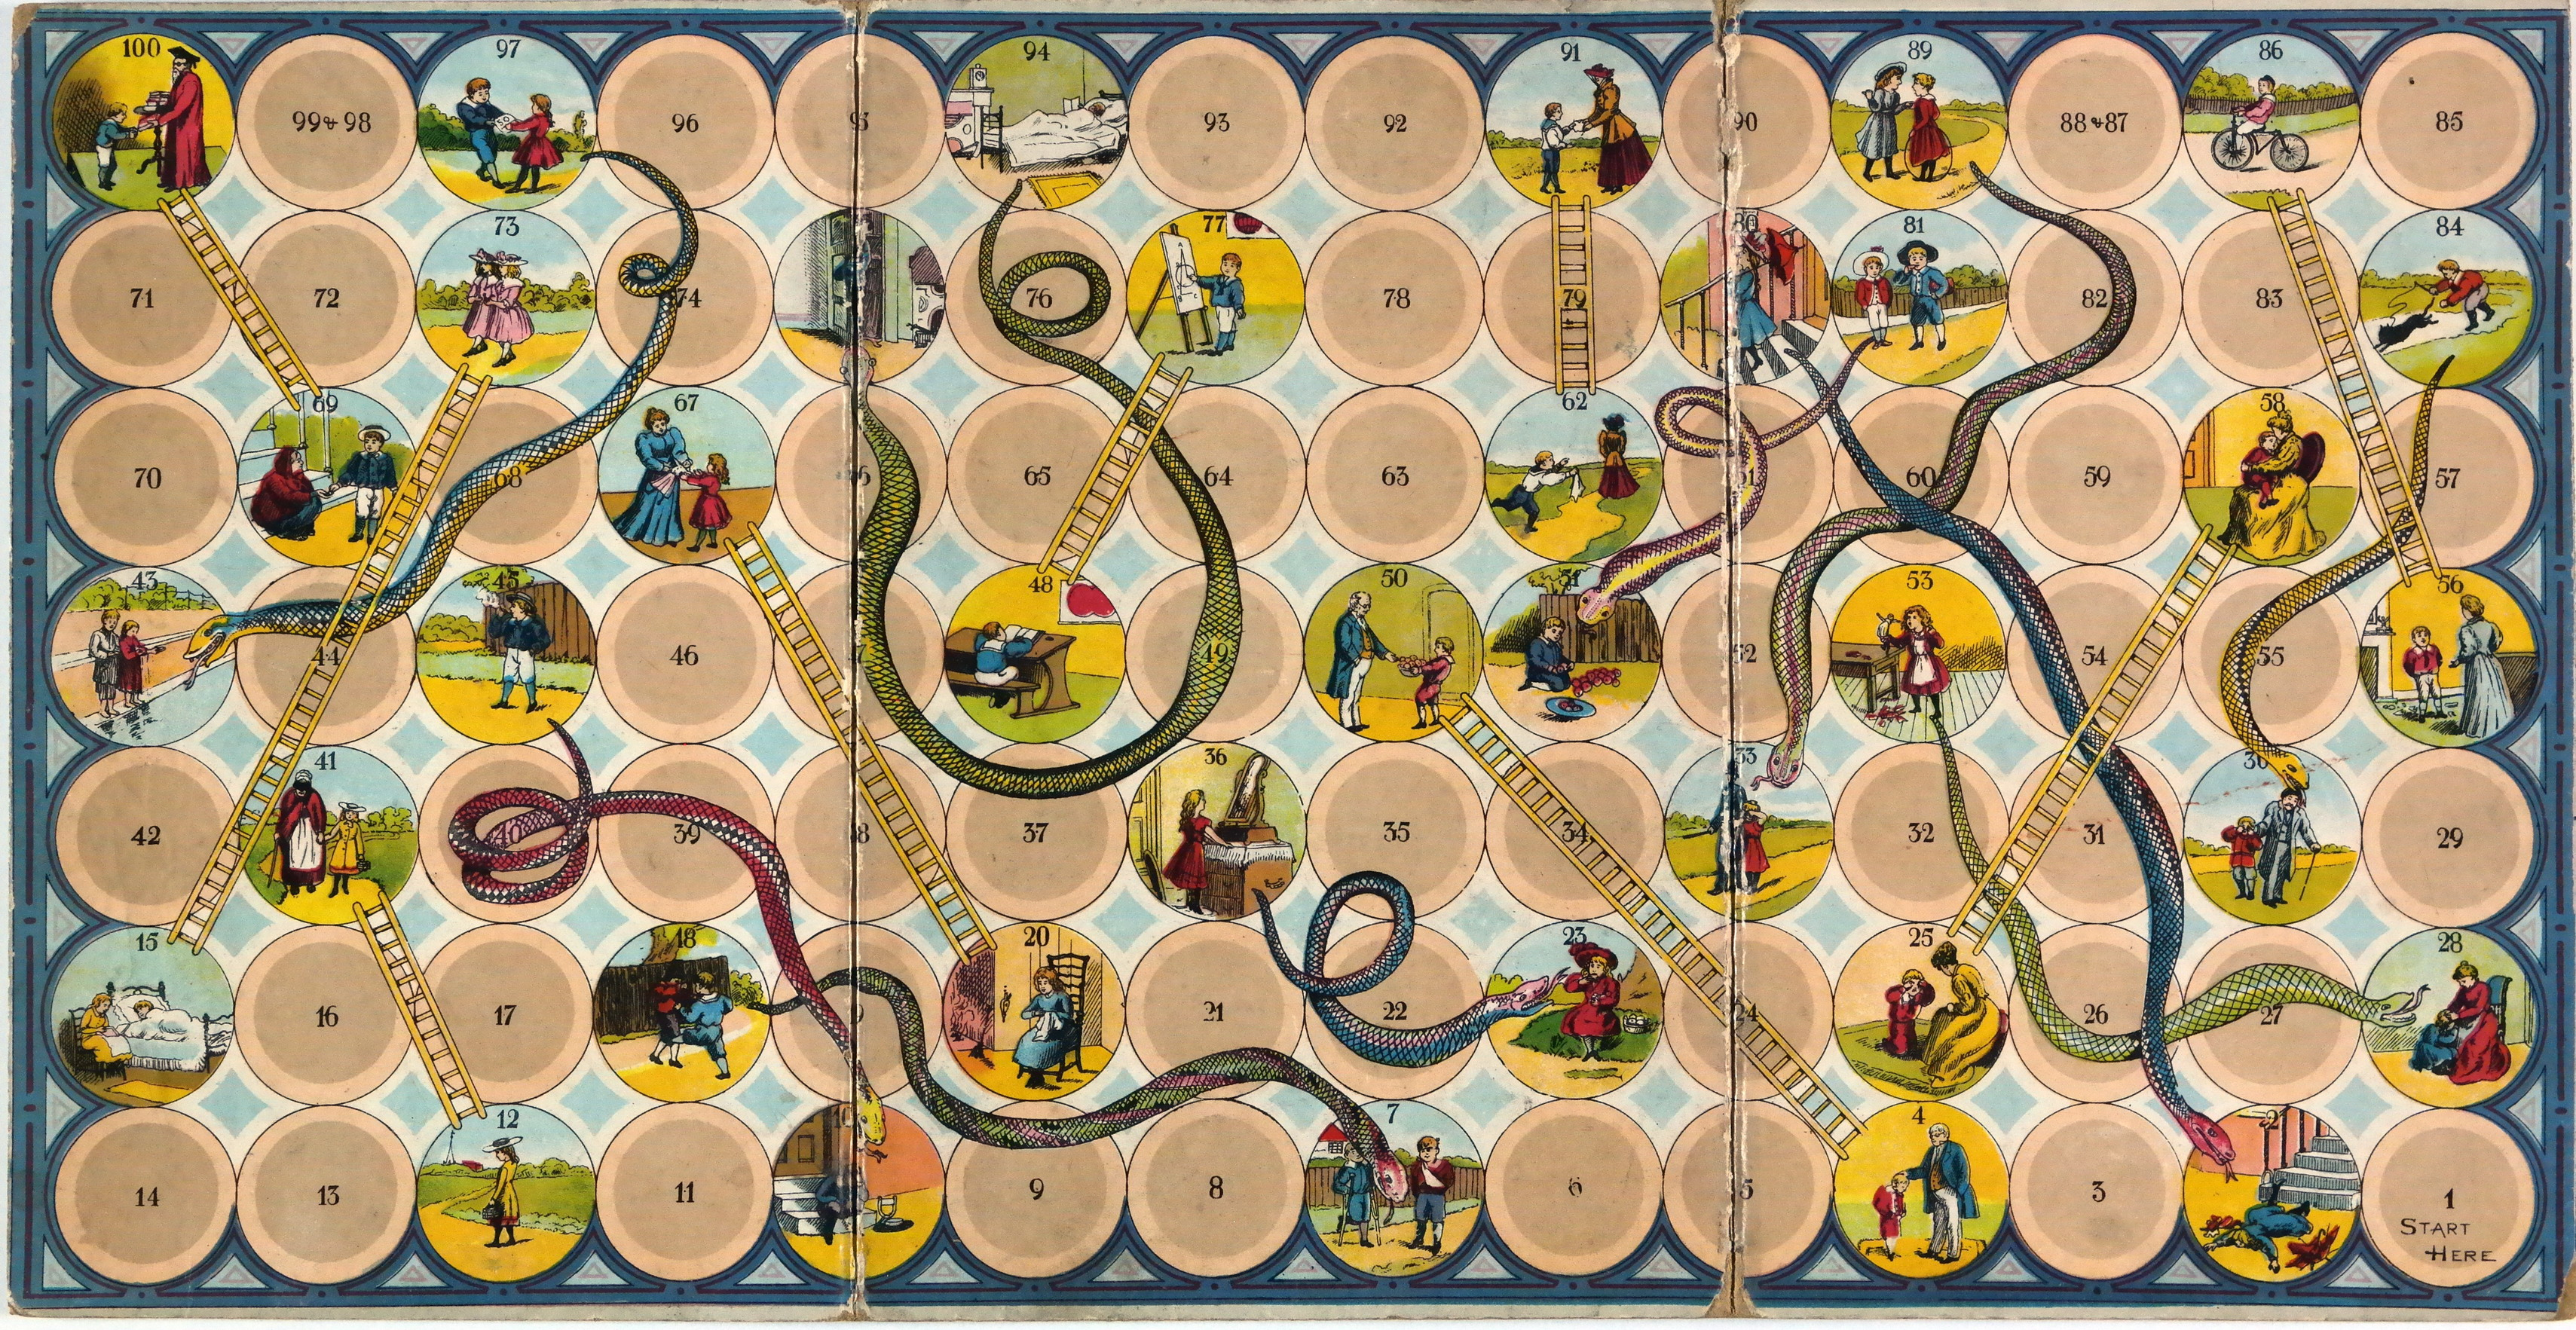 Chutes And Ladders Board Template To snakes and ladders